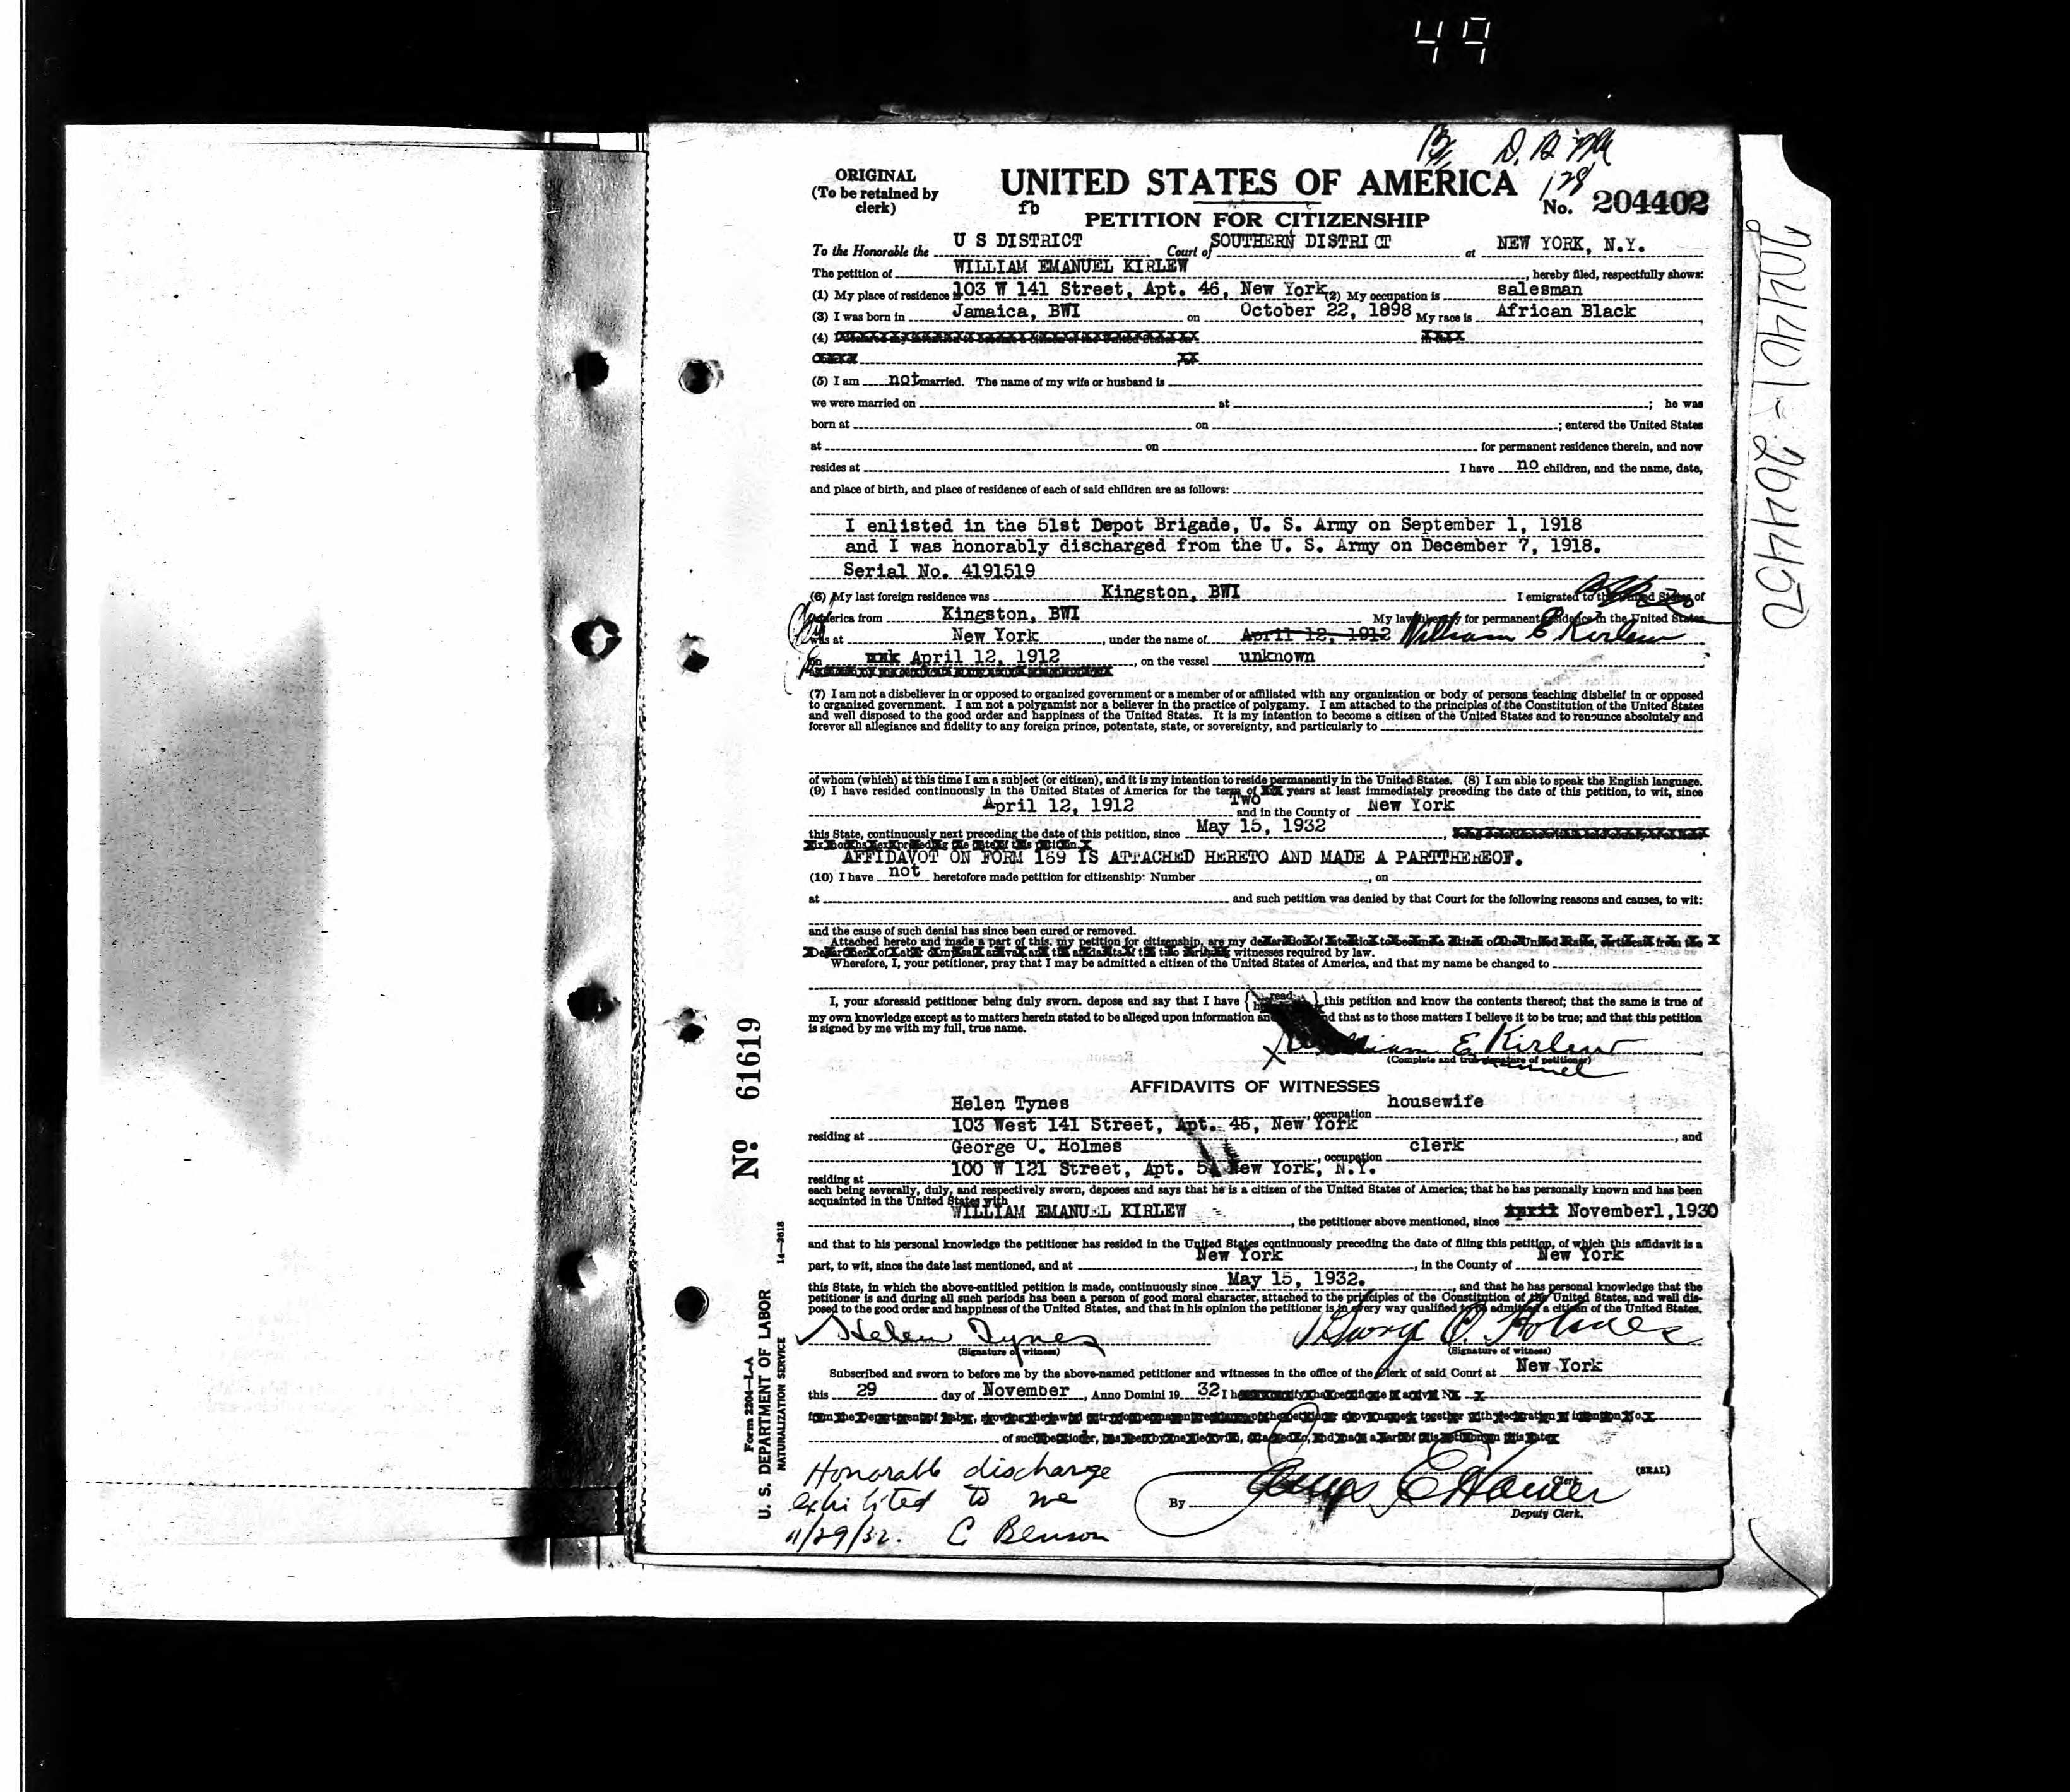 Naturalization Petition Card for William Kirlew